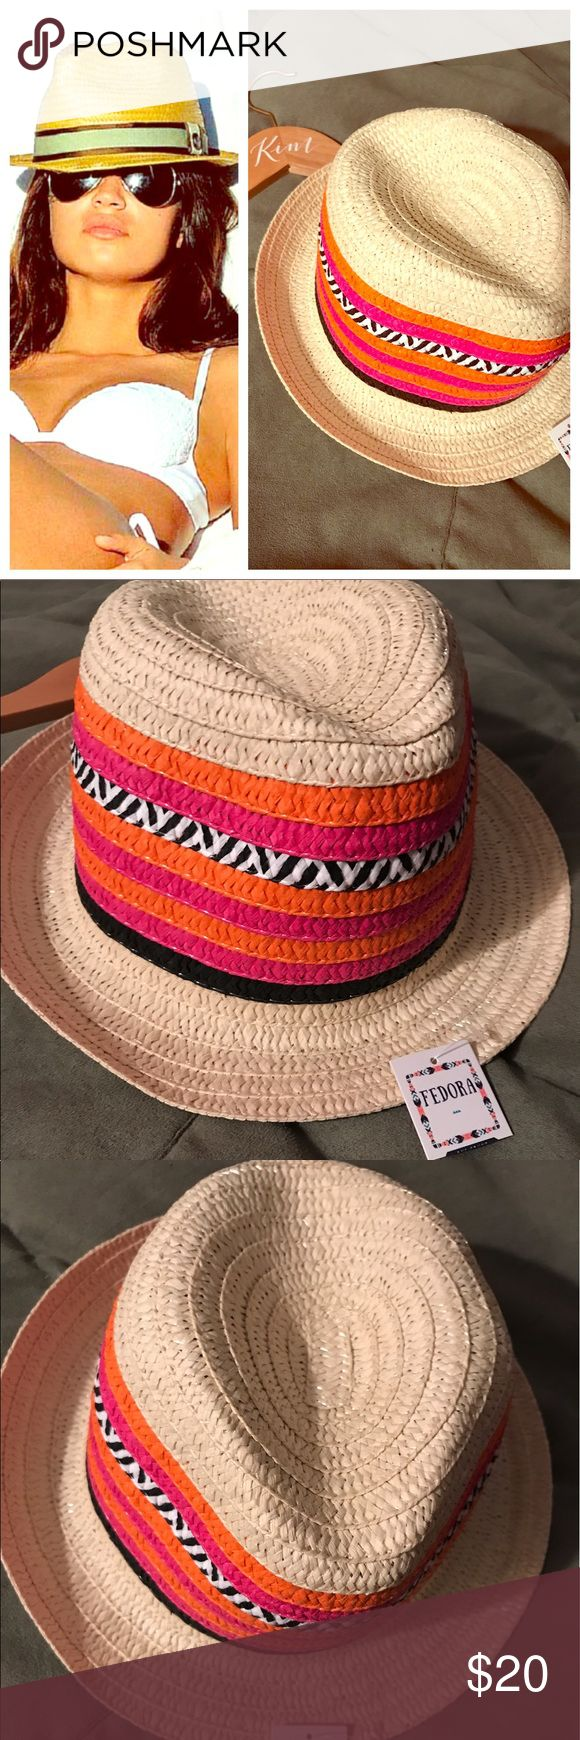 """Summer Ready! SUPER CUTE, Colorful Fedora Hat Nude Tan color, stripes of black, fuchsia and bright orange. And the CUTEST Zebra print stripe in the middle! Perfect sized brim to keep your face and eyes out of the sun. The fabric is nice and flexible and can be put into any position you'd like it to be. I'm SO obsessed with this hat I obviously had to get one for myself! 71/2"""" Wide 8"""" Long, 4"""" Tall from the base of the brim. I hope the dimension photo helps, I was so pumped to find the blank…"""